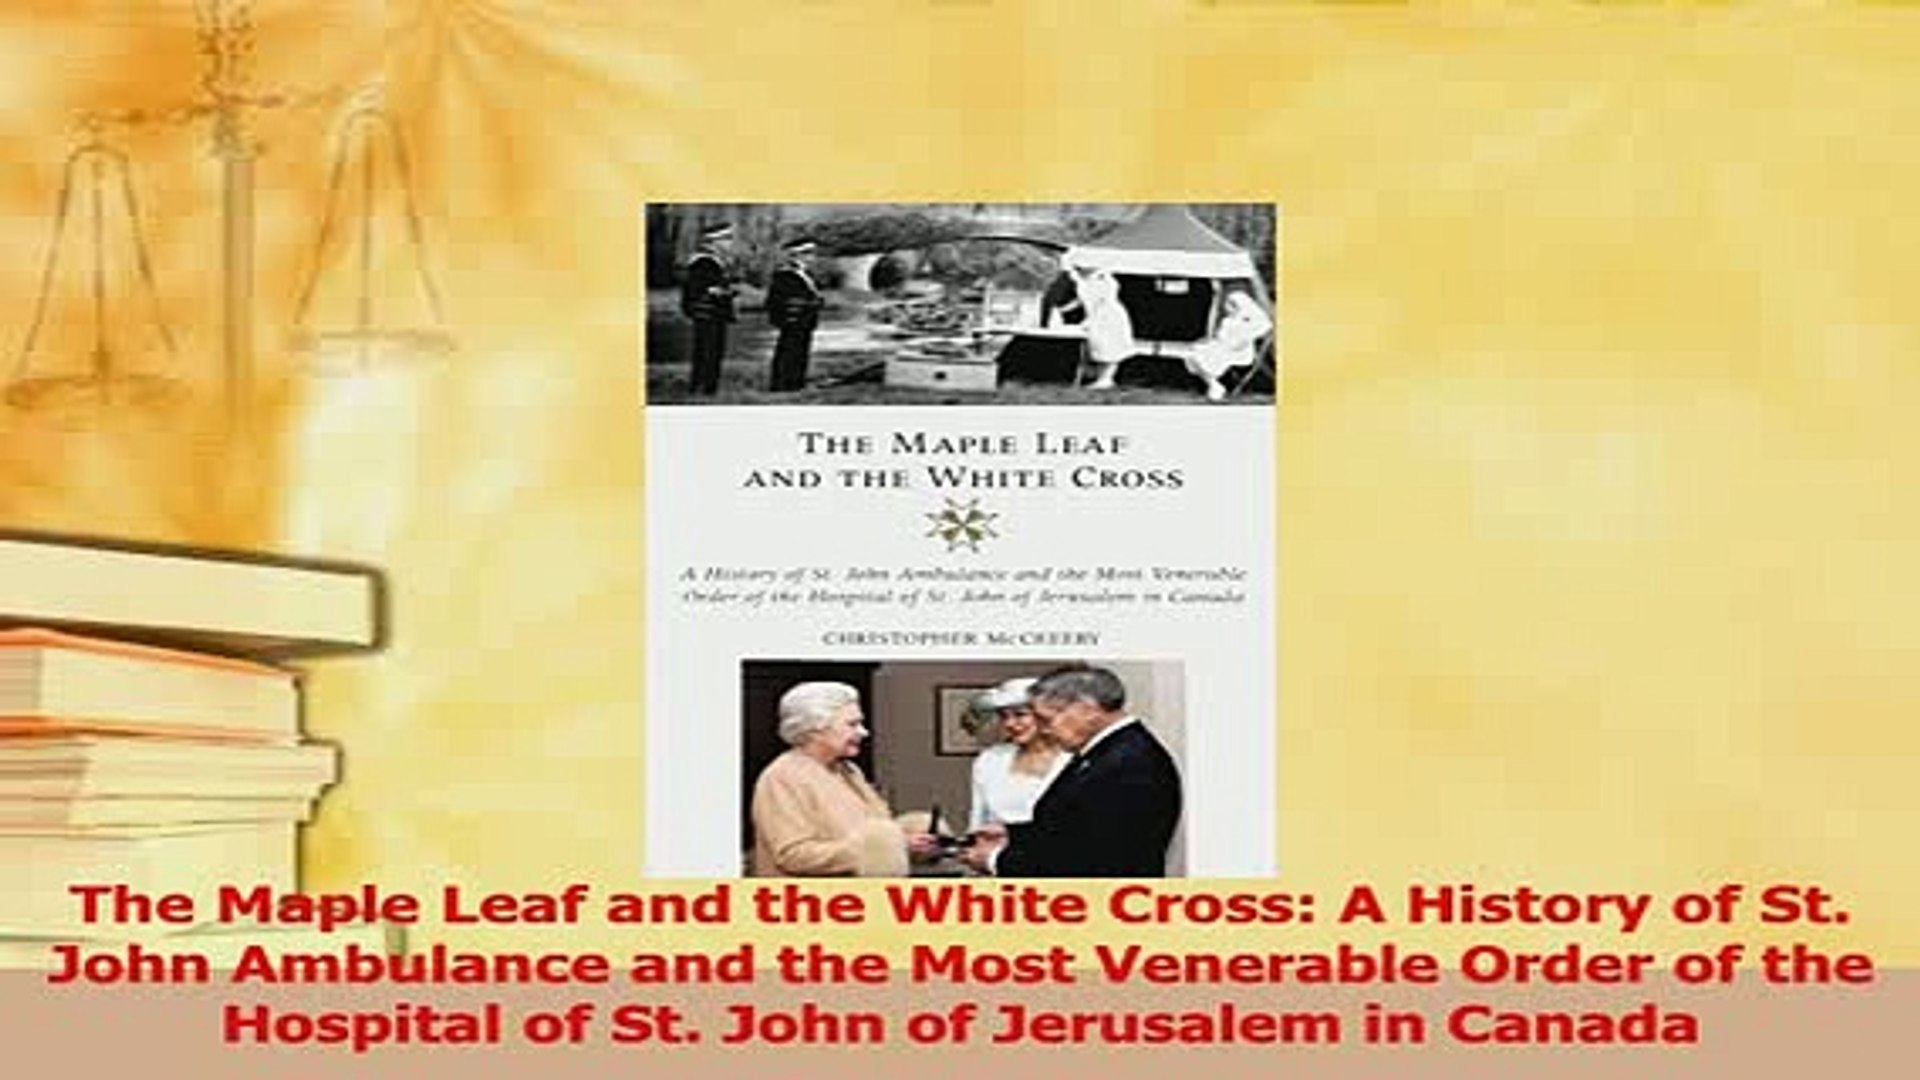 John of Jerusalem in Canada John Ambulance and the Most Venerable Order of the Hospital of St The Maple Leaf and the White Cross A History of St